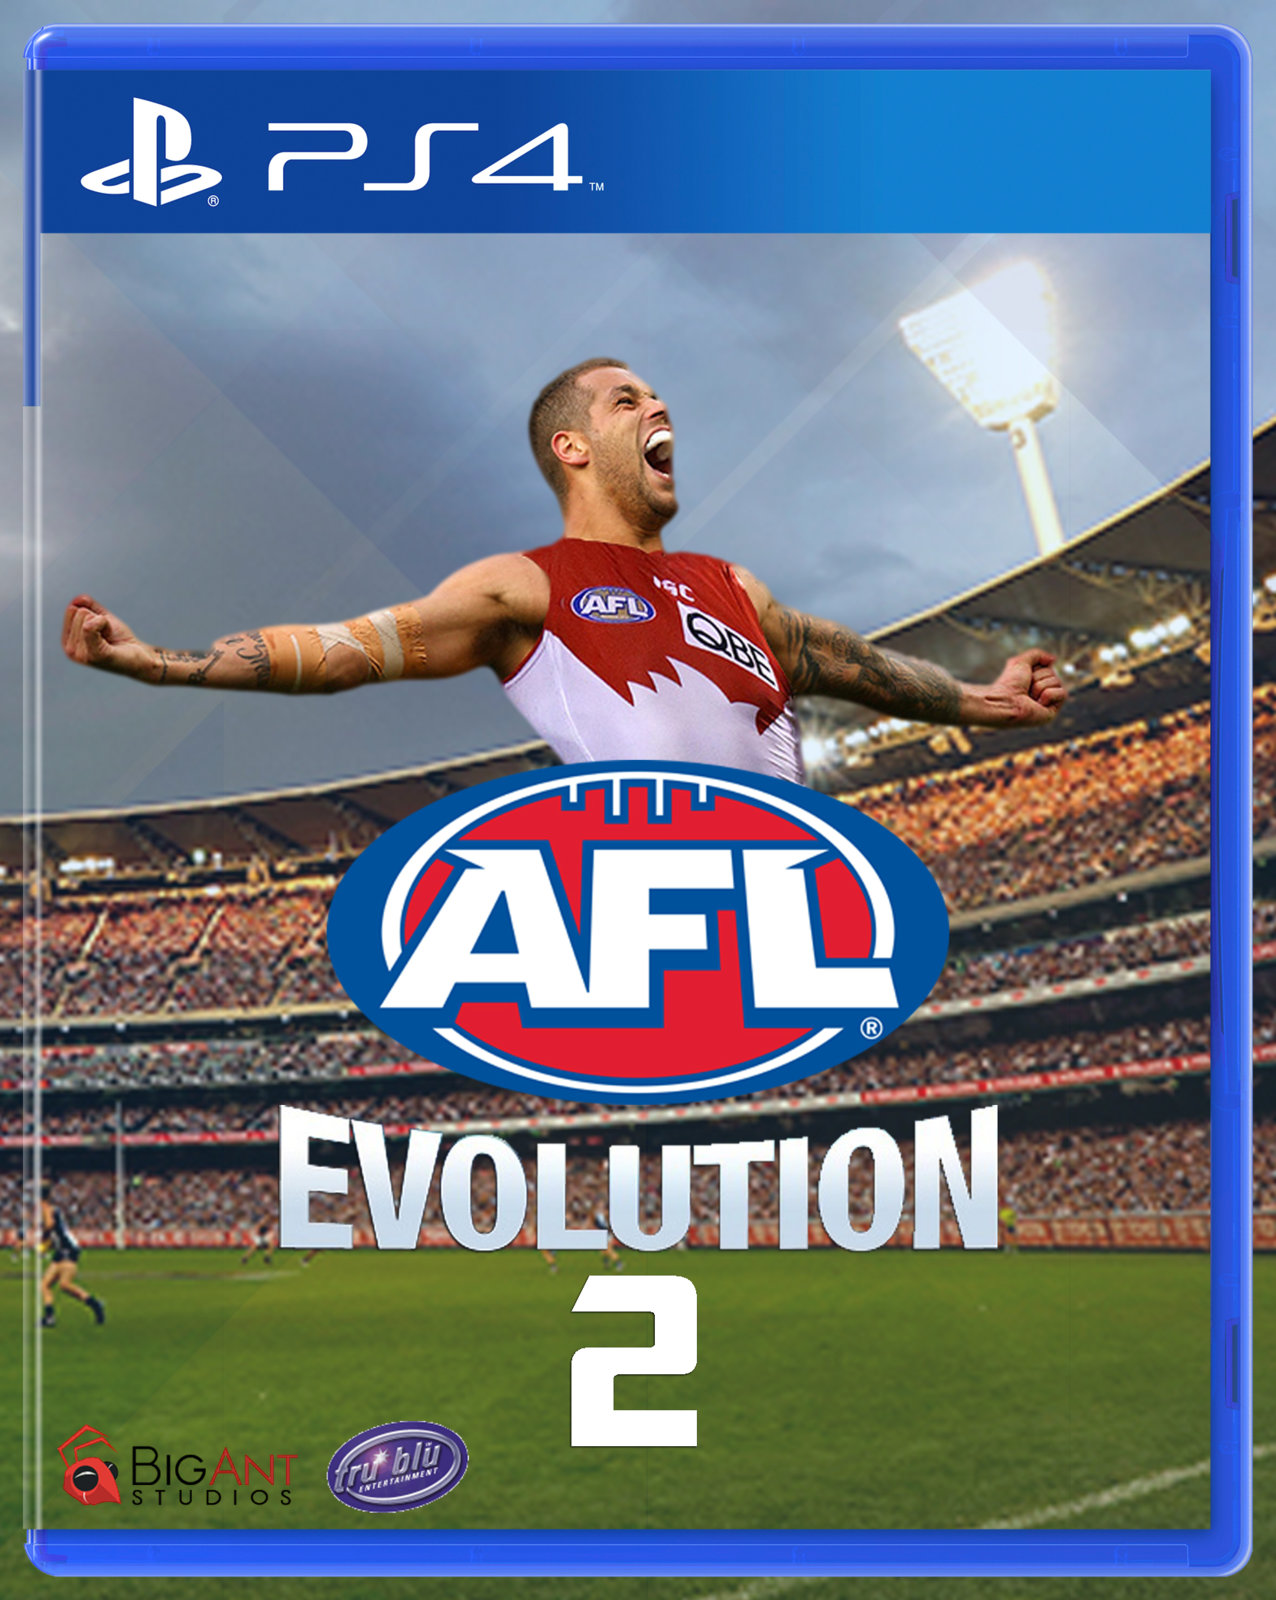 PS4 Cover.jpg